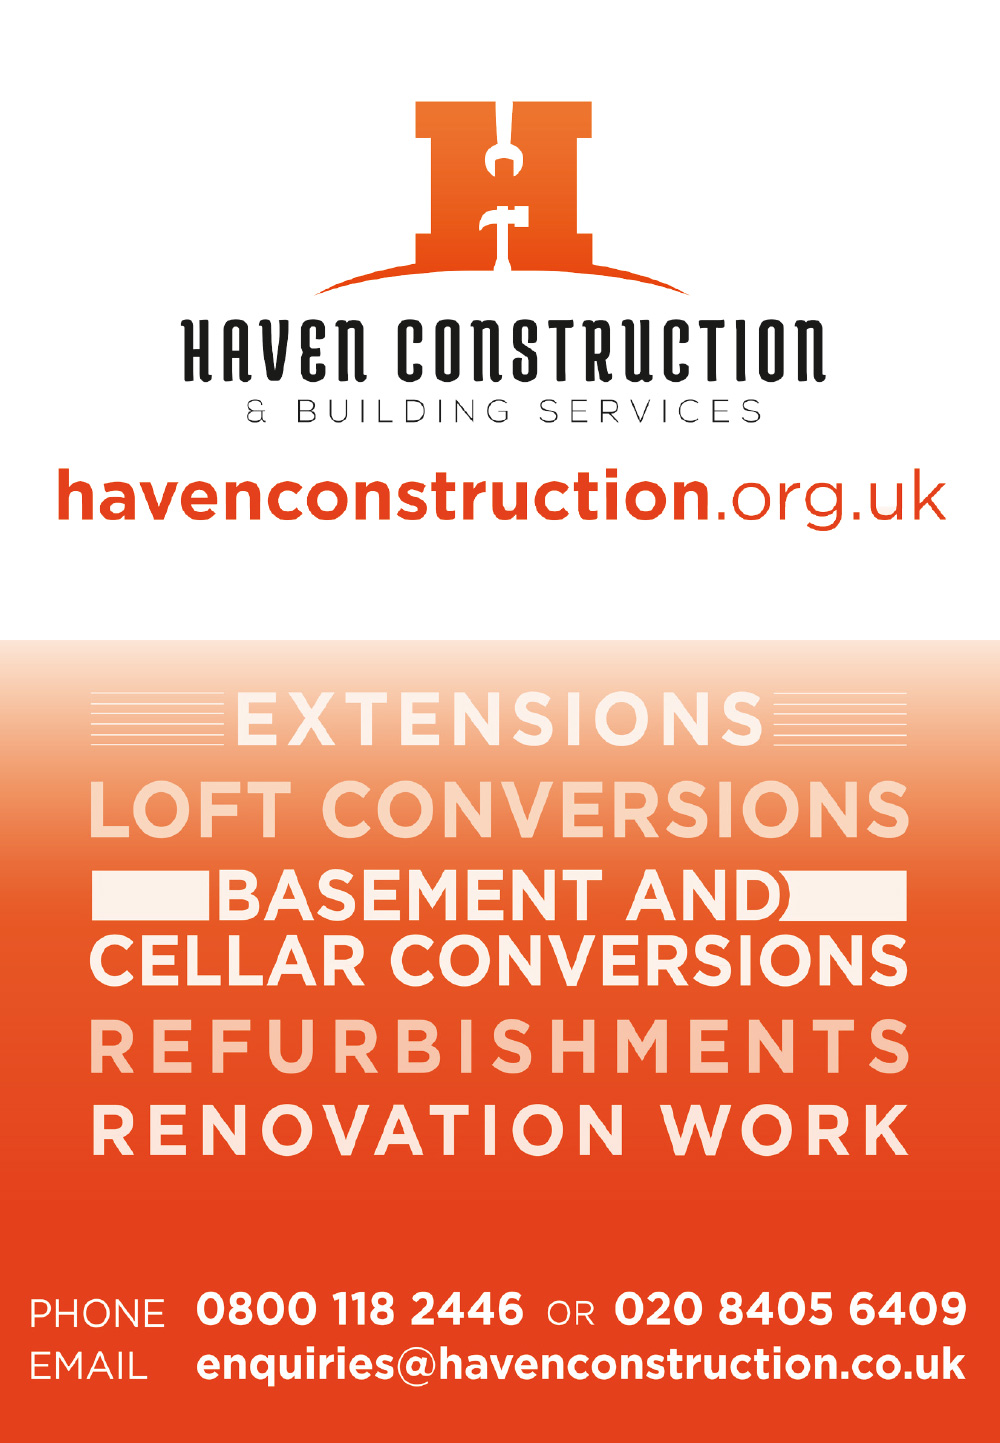 Haven Construction